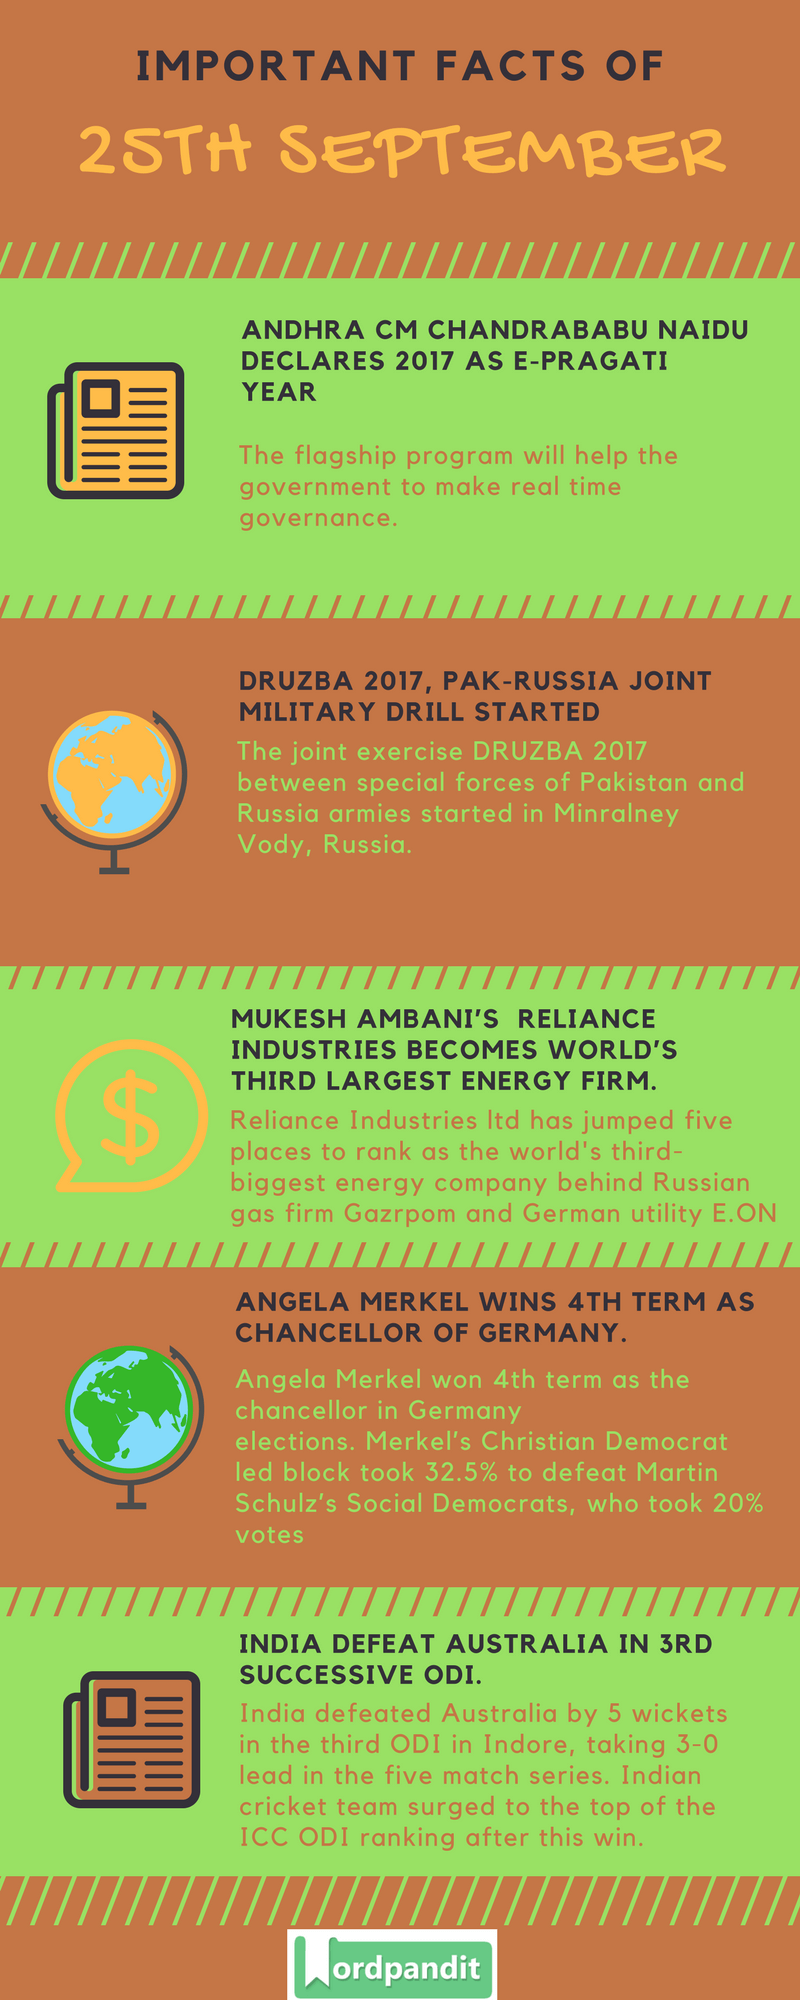 Daily-Current-Affairs-25-september-2017-Current-Affairs-Quiz-september-25-2017-Current-Affairs-Infographic